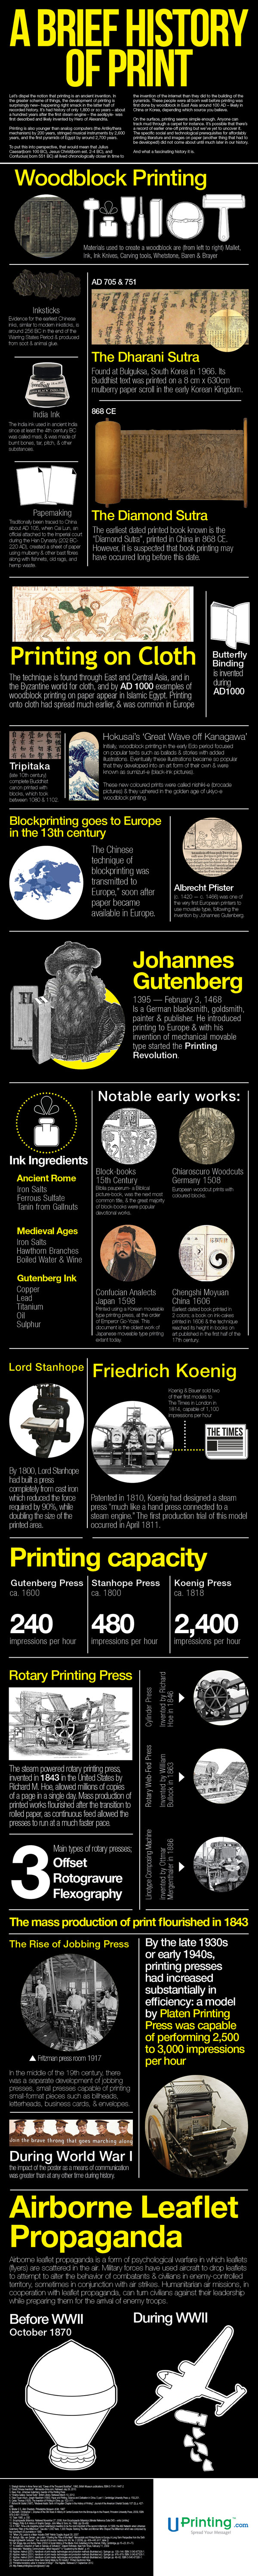 A Brief History of Print - An Infographic